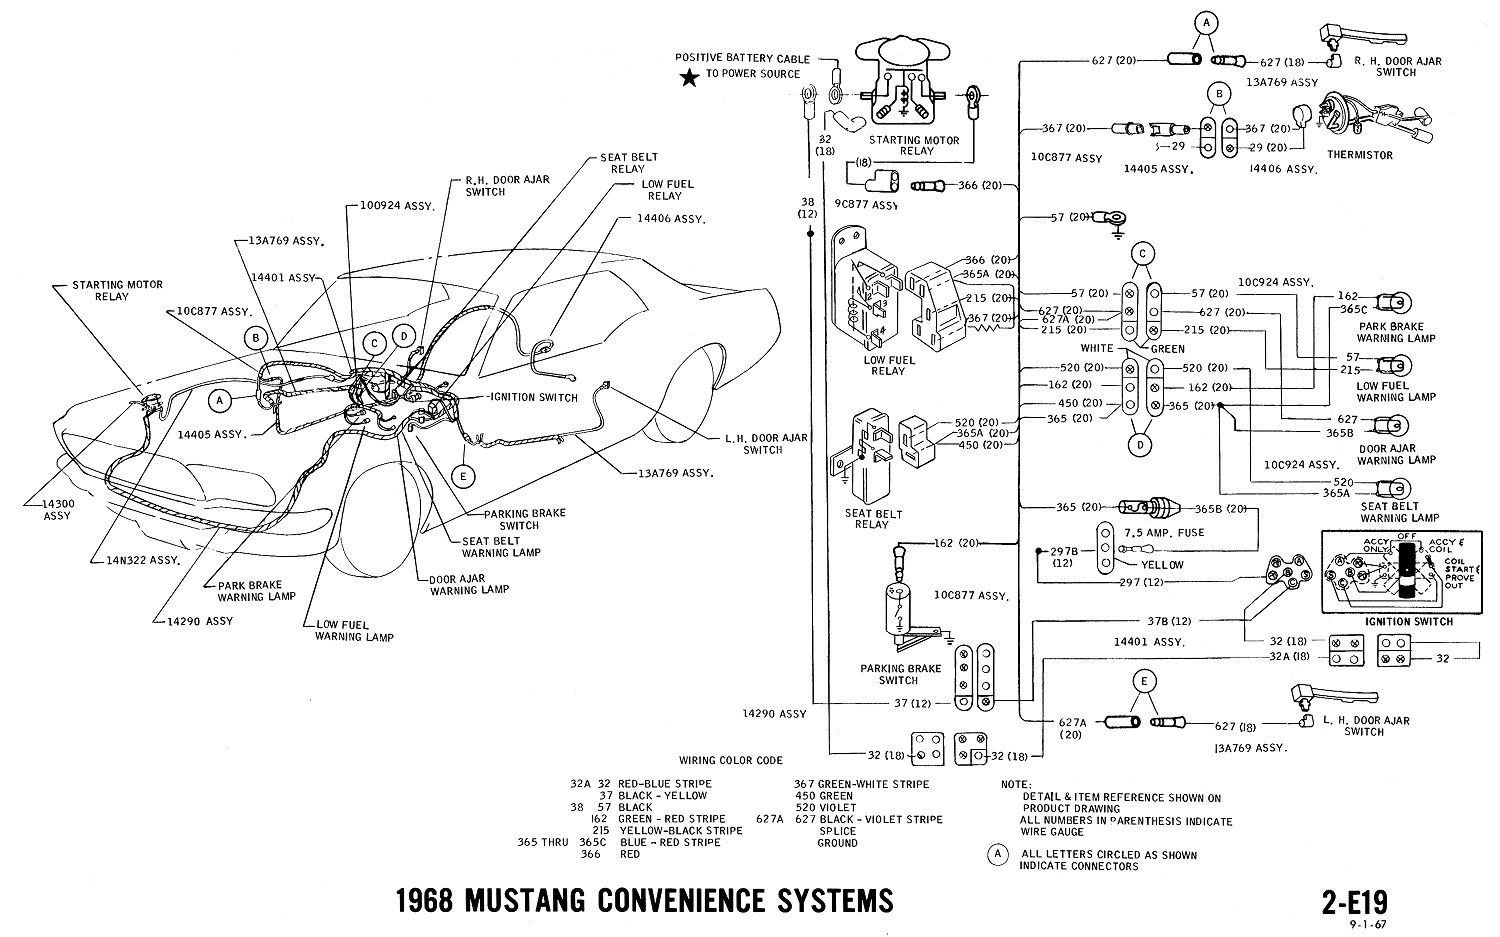 1968 mustang wiring diagram convenience systems 1968 mustang wiring diagrams and vacuum schematics average joe